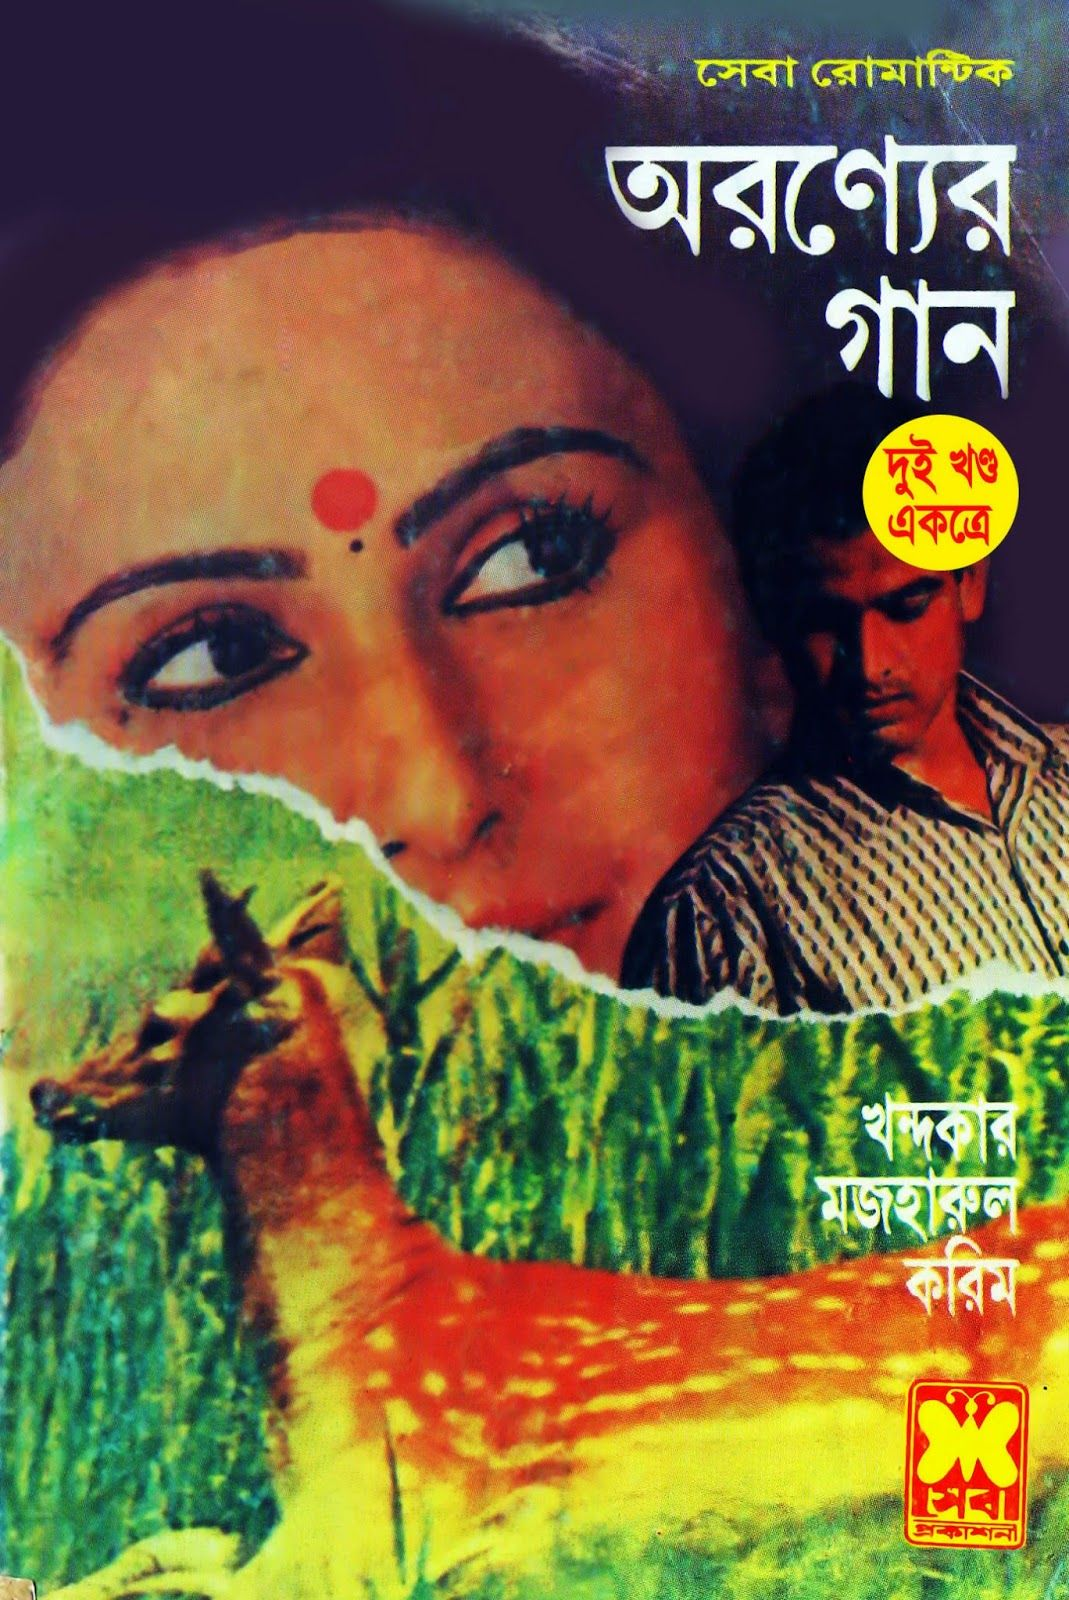 Free Download Bangla Pdf E Book  ���াউনলোড ���াংলা ���ই: Aronnyer Gan (অরণ্যের